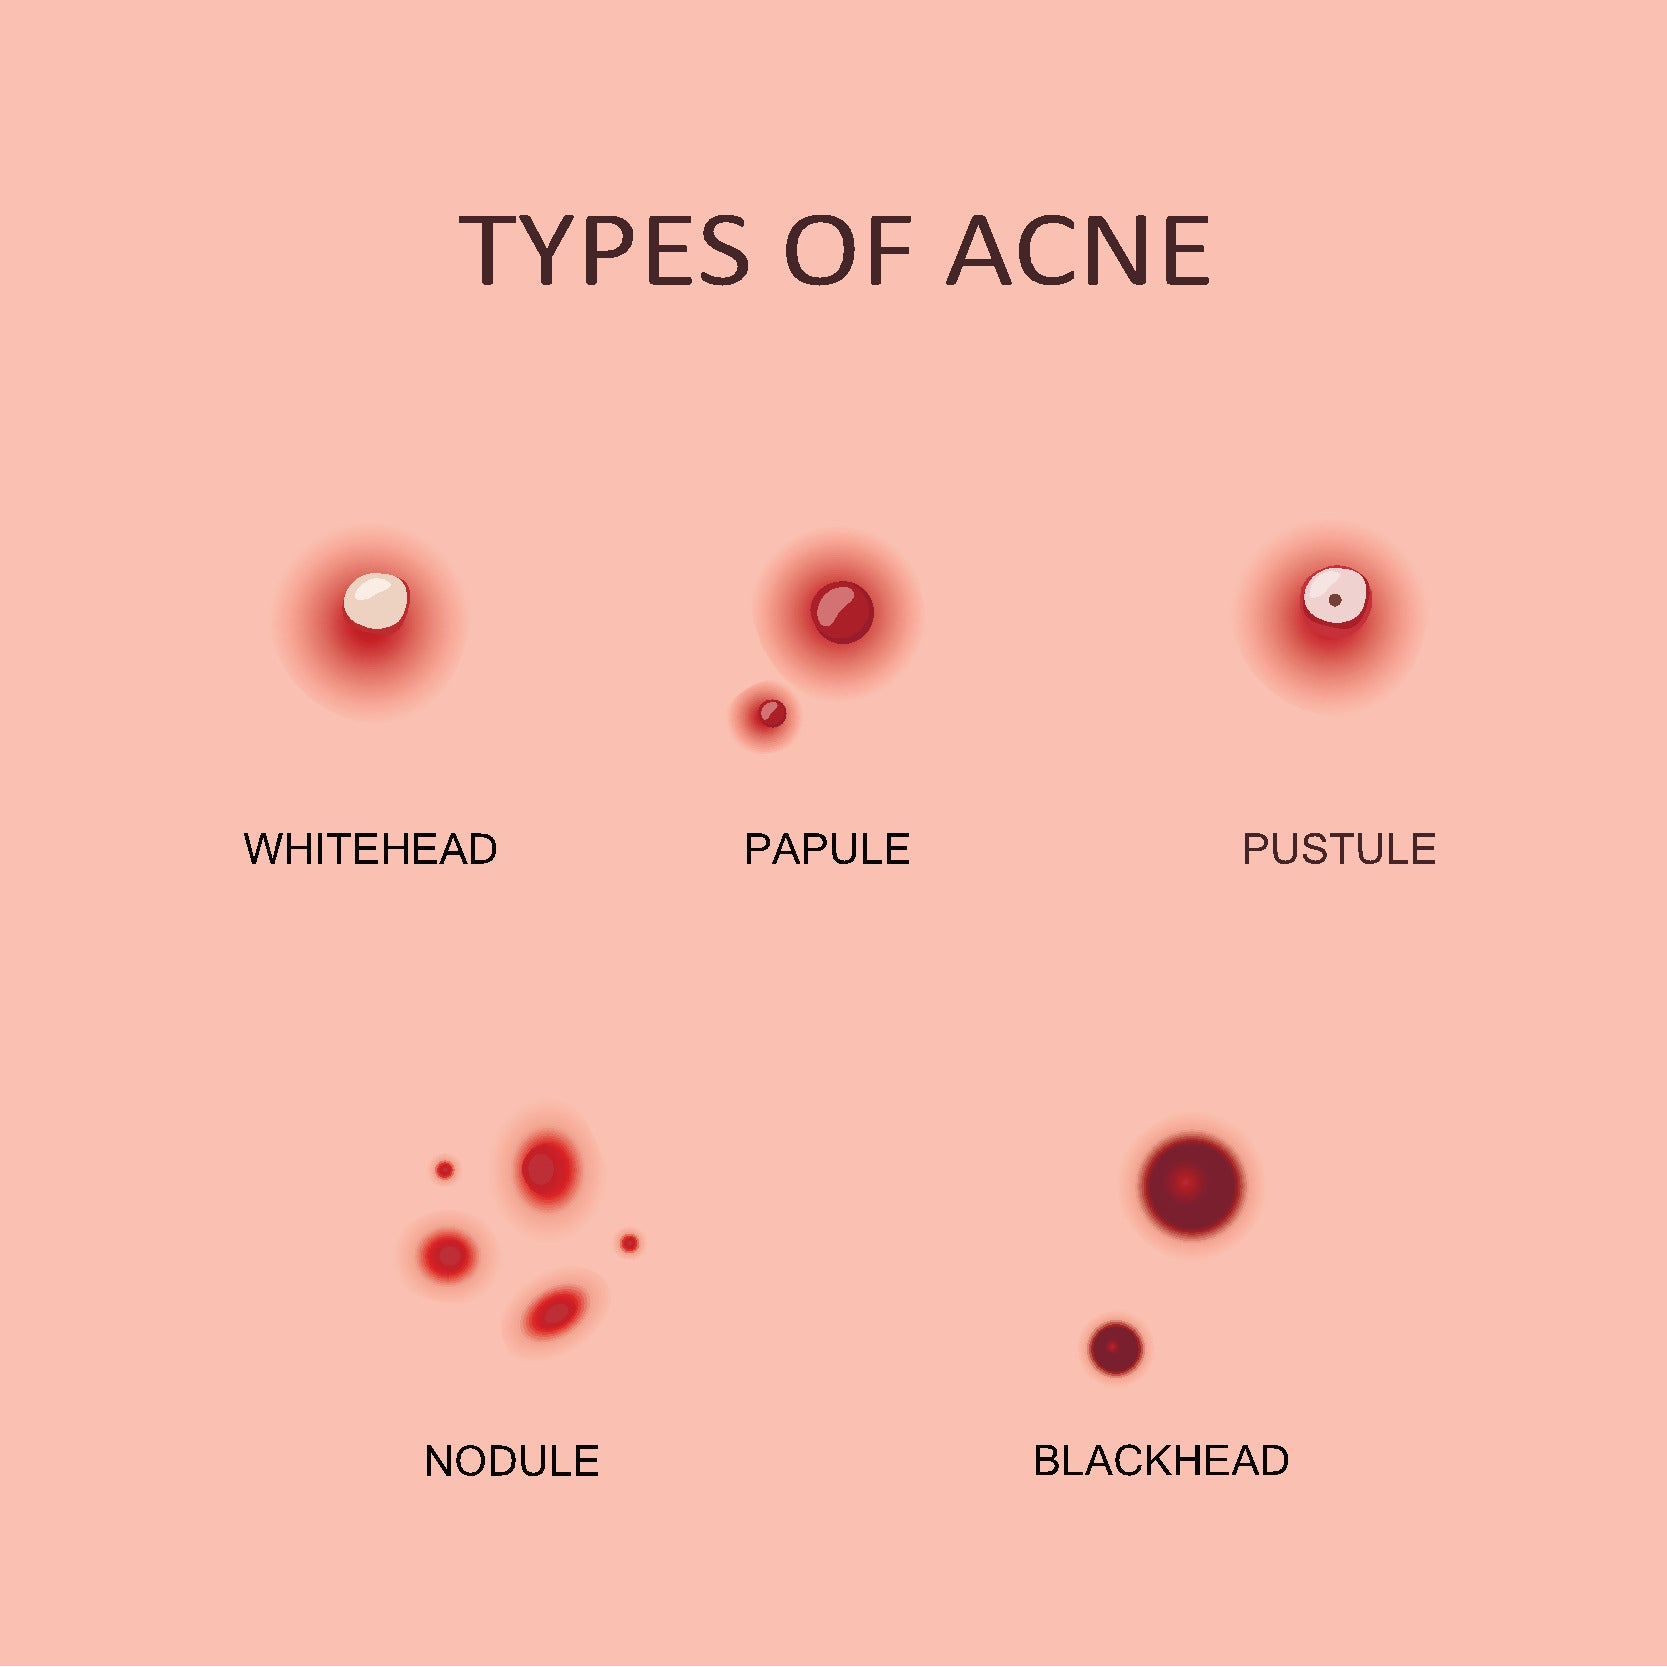 Acne Scars: What Causes Them and How to Treat Them